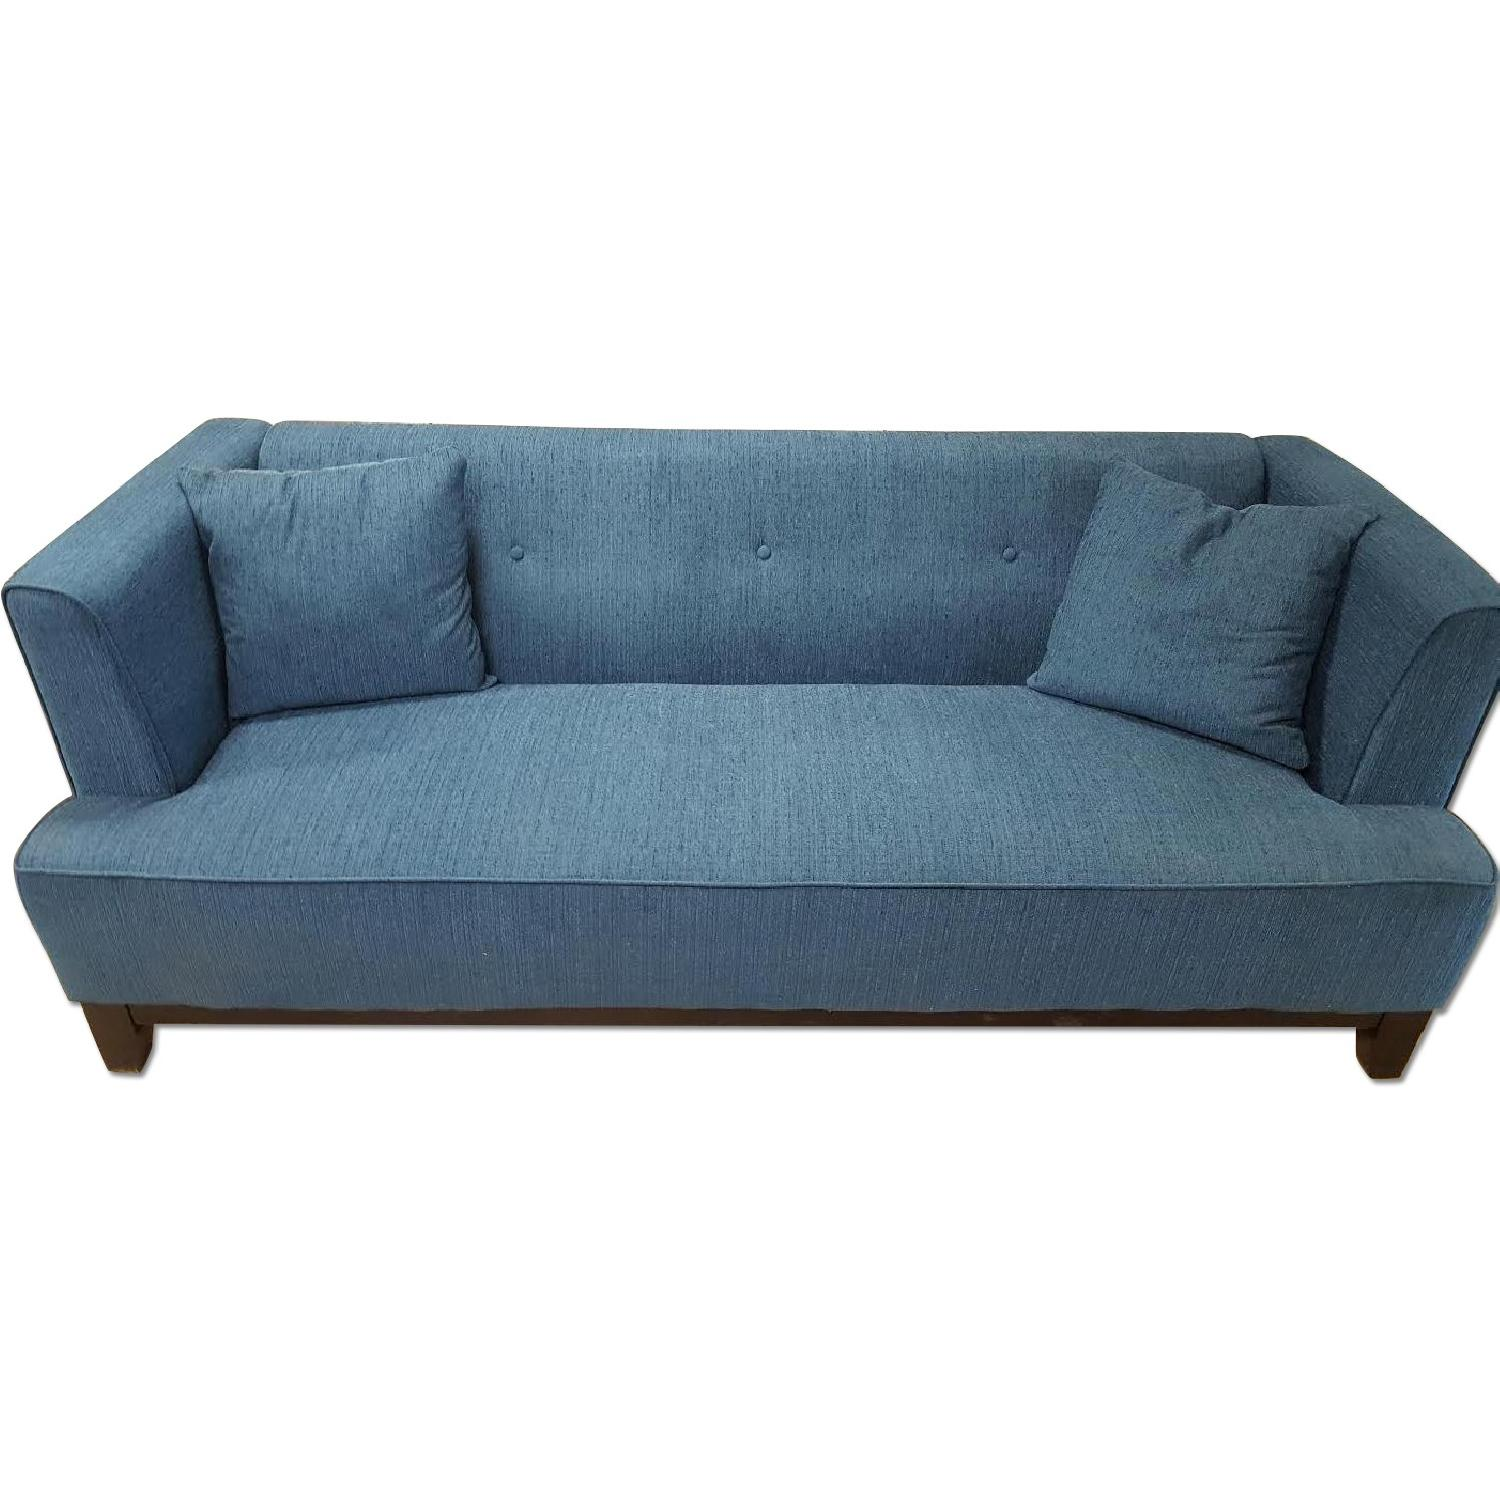 Furniture Of America Sofia Teal Sofa Aptdeco